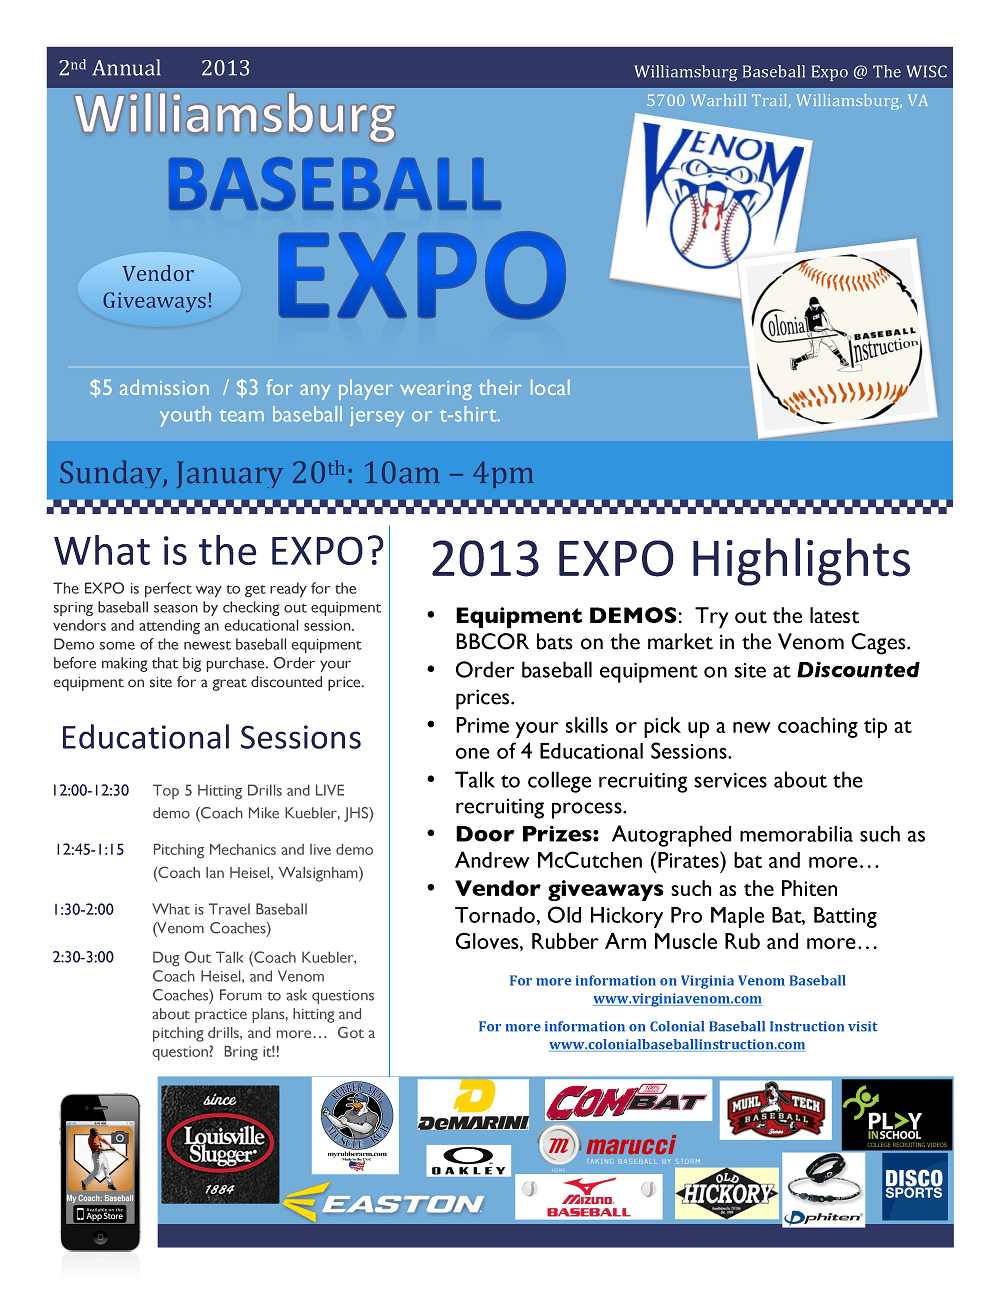 Disco Sports at the Williamsburg Baseball Expo